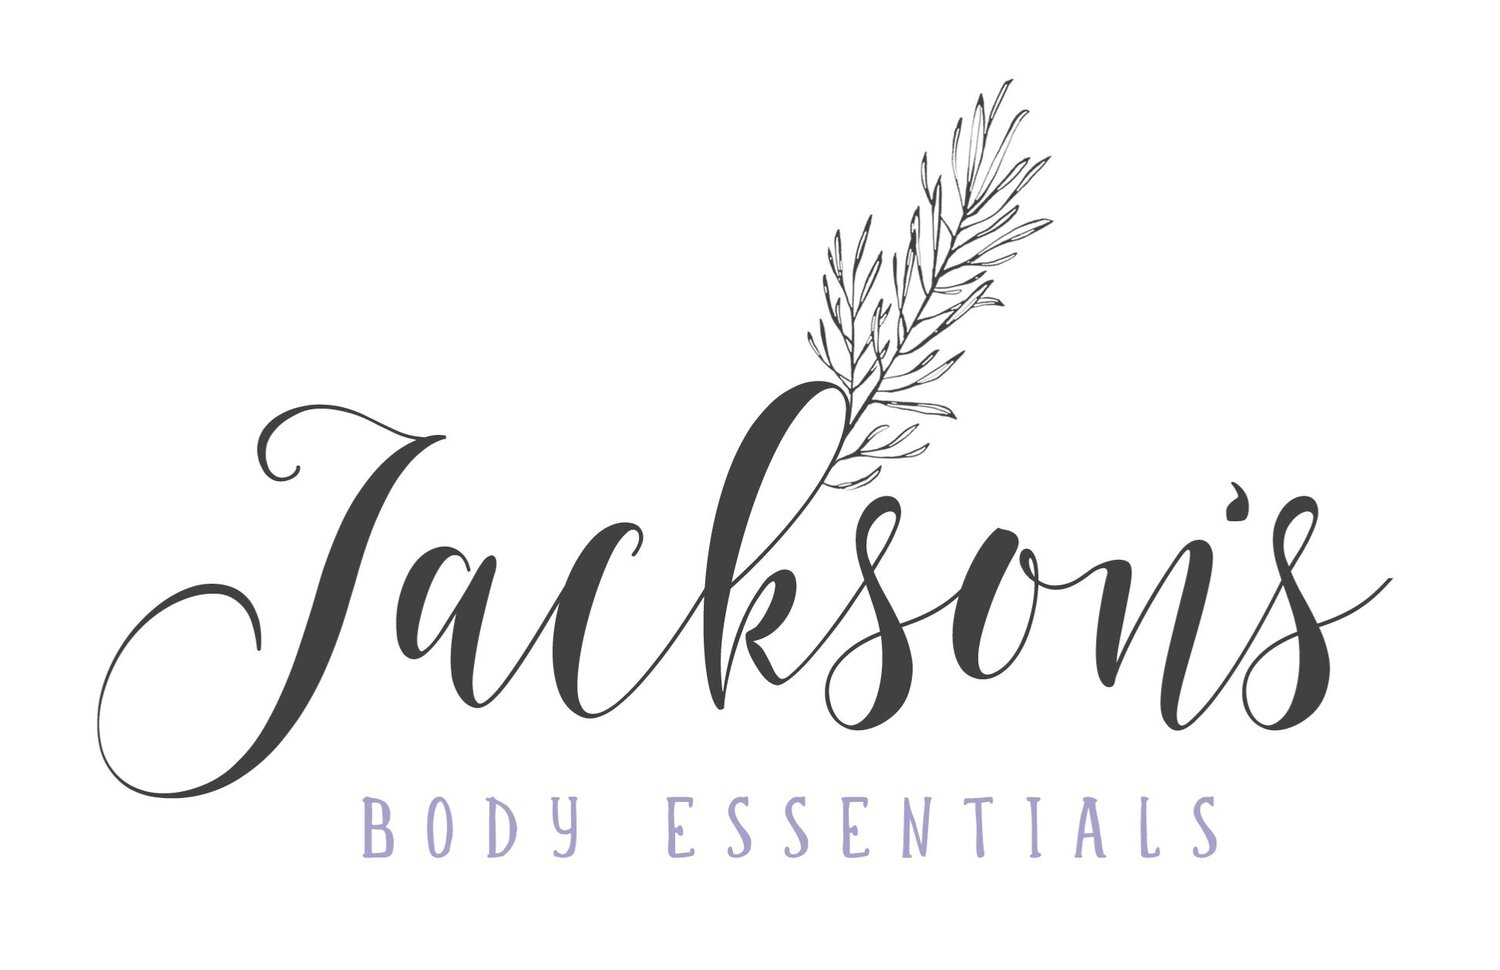 Jackson's Body Essentials